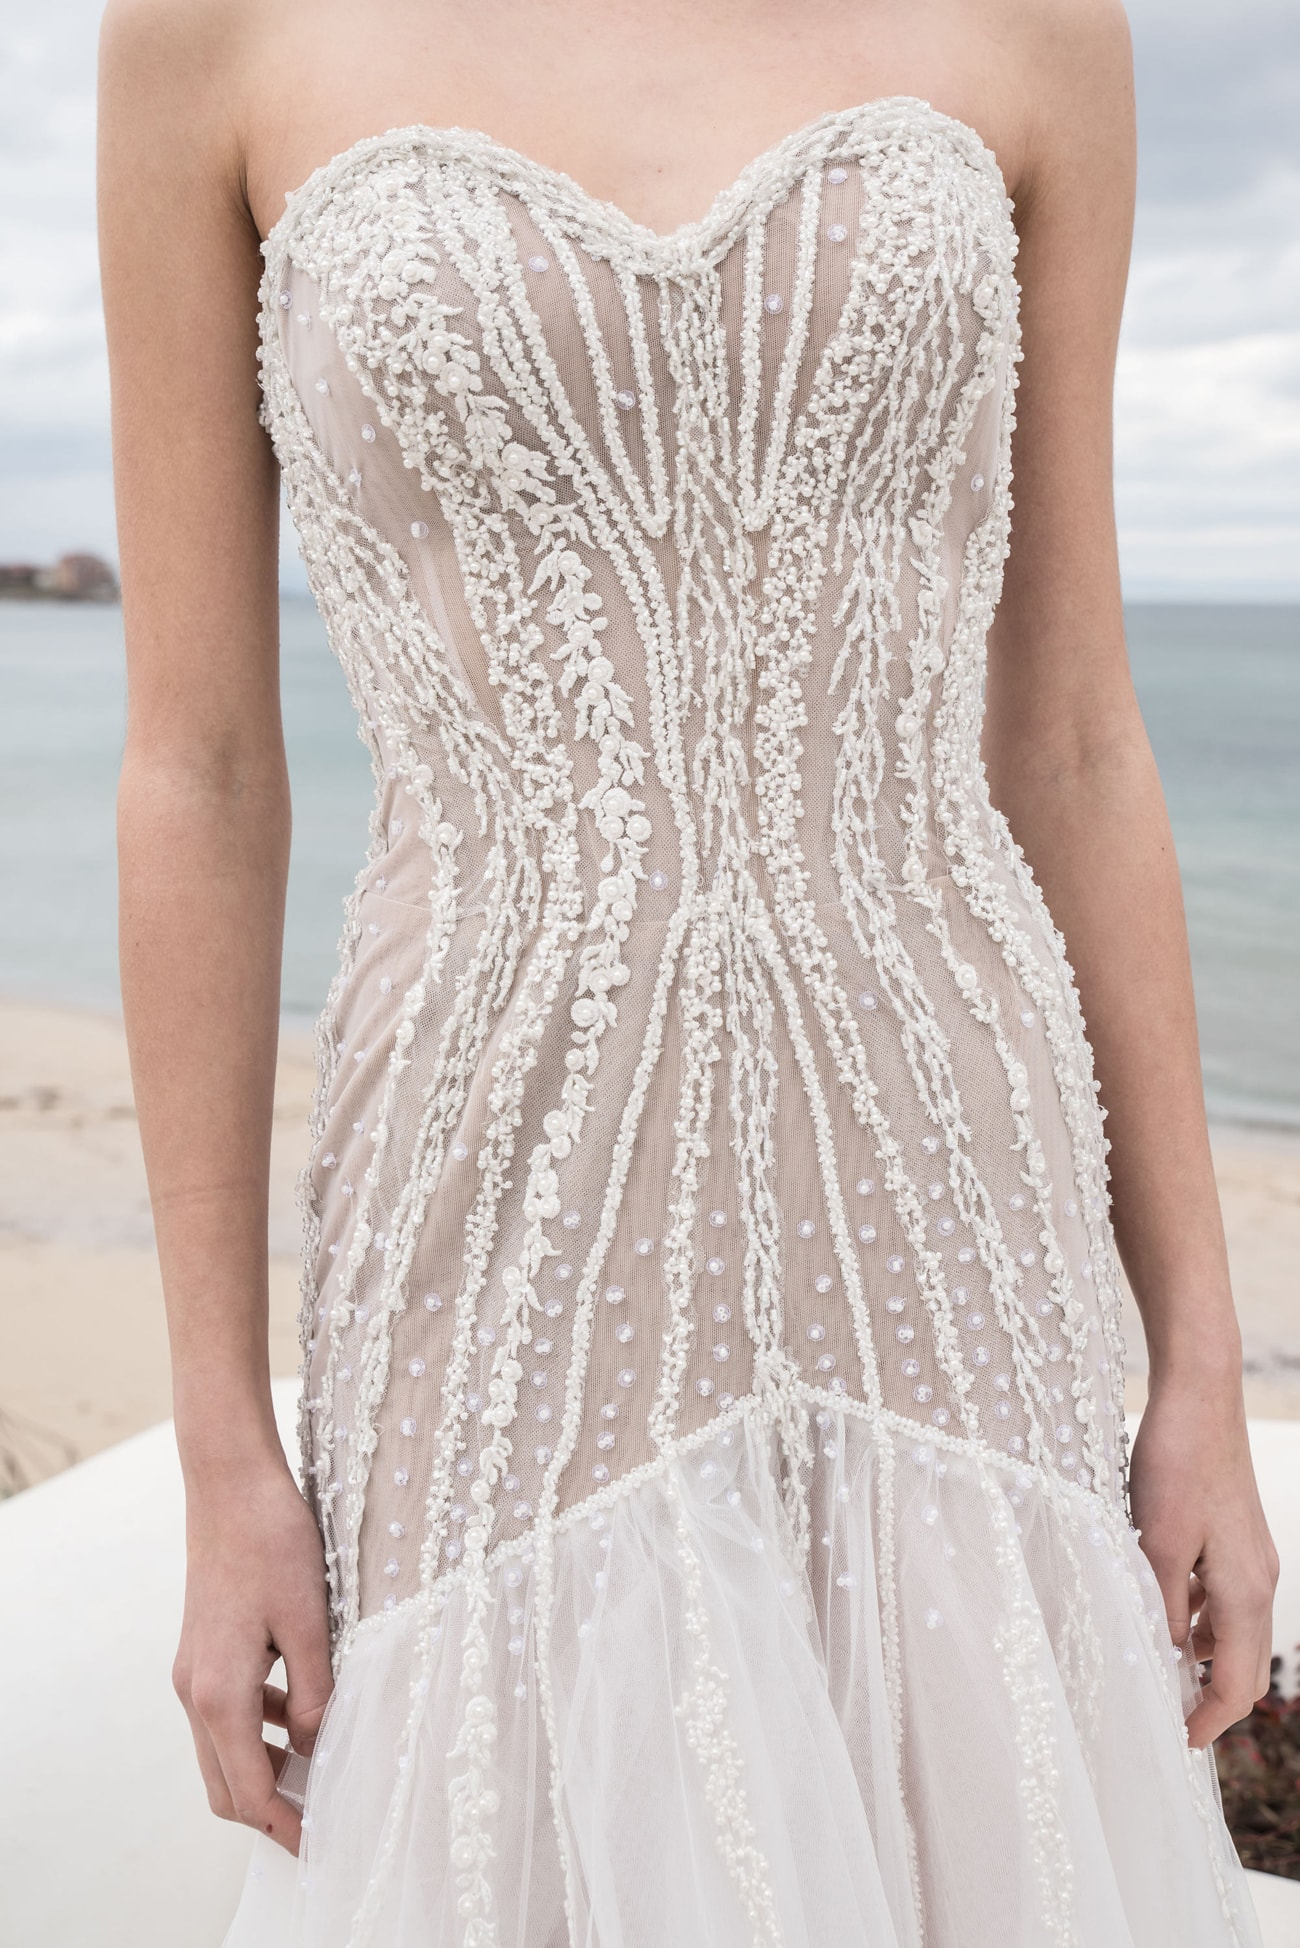 20 Chic Amp Sheer Wedding Dresses From Etsy Southbound Bride